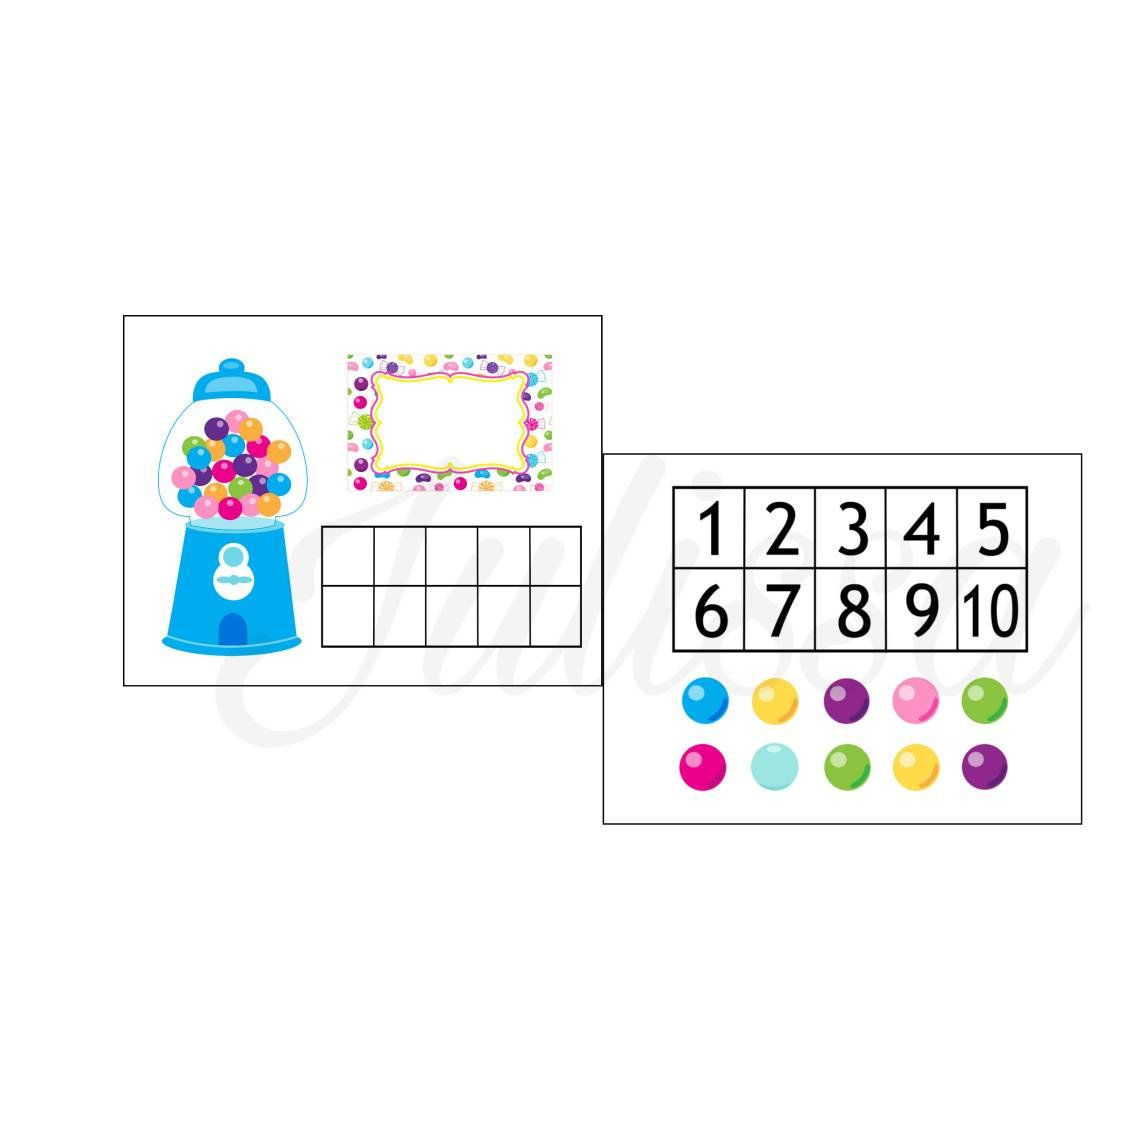 Counting Gumballs File Folder Game Learning Numbers